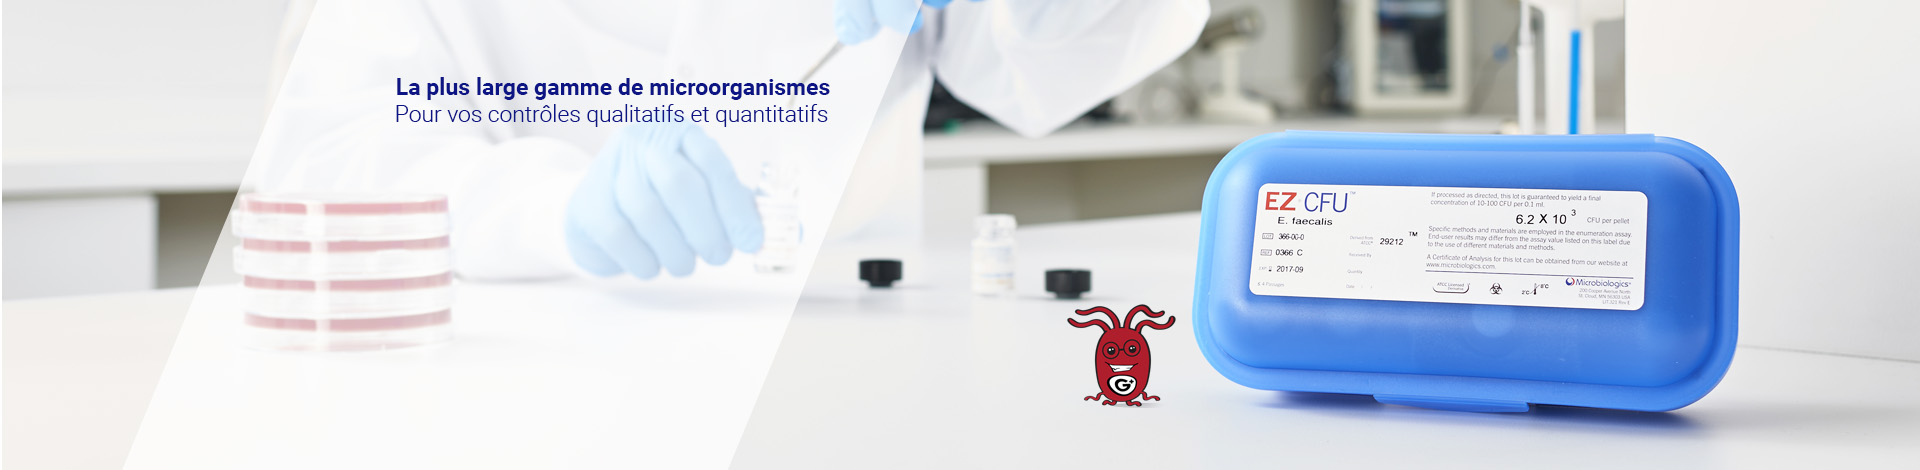 alliance bio expertise connected microbiology